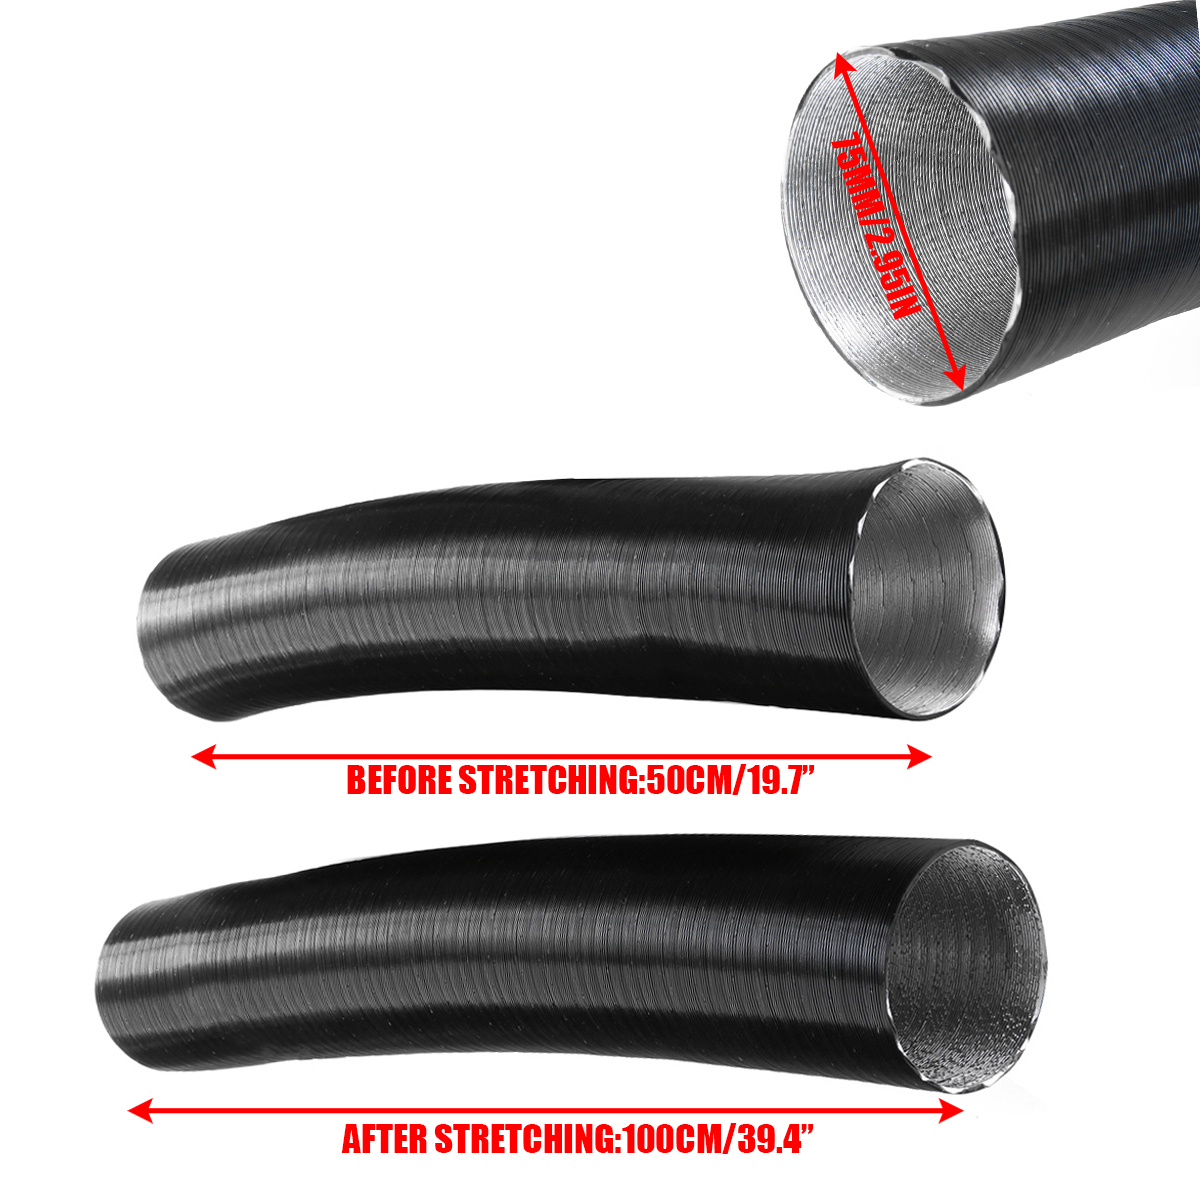 1 Set 75mm Heater Pipe Ducting Y Piece Air Outlet Vent Heater Pipe For 75mm Internal Diameter Air Ducting